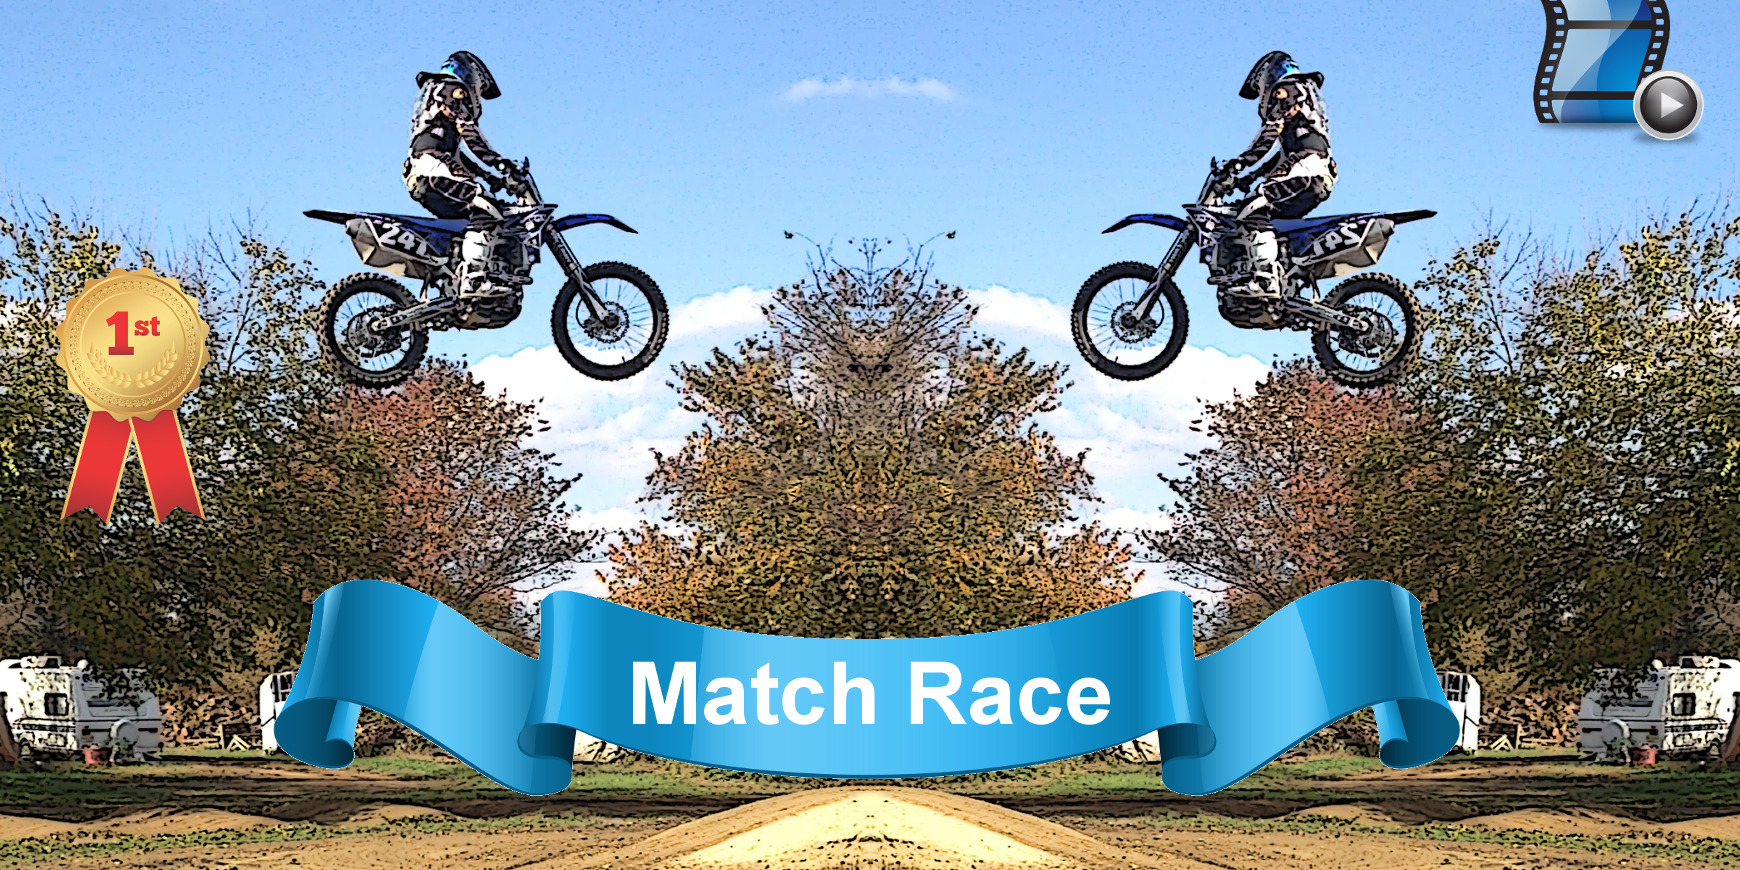 Match Race app for Motocross and all forms of racing